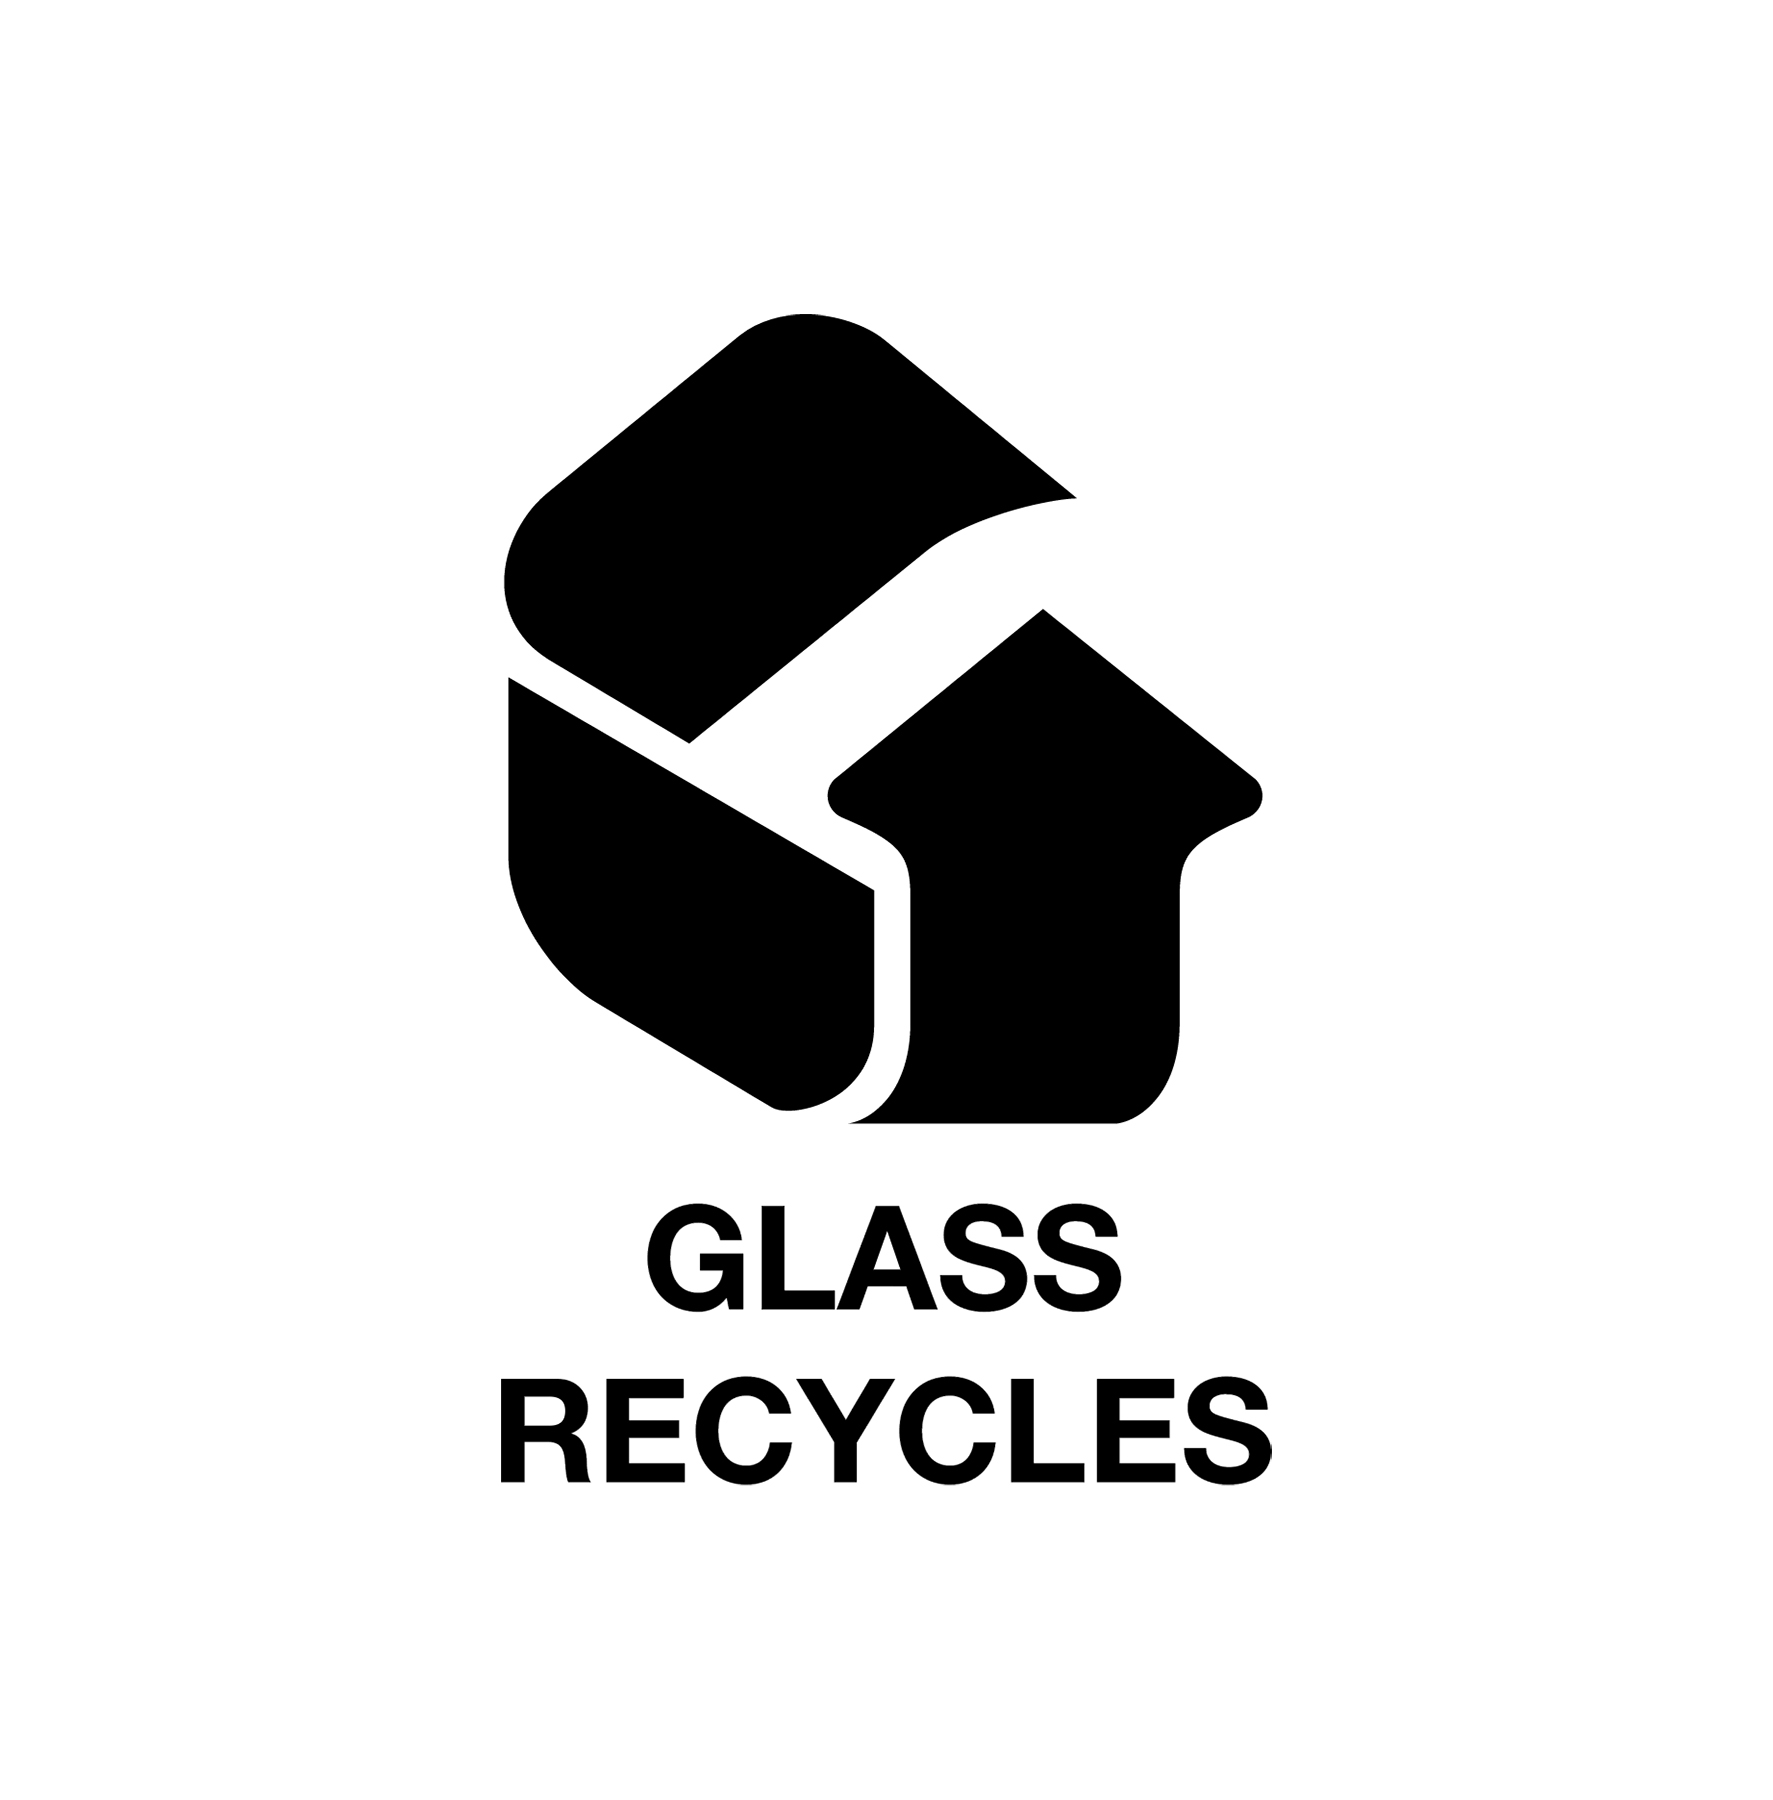 glass-recycles-logo